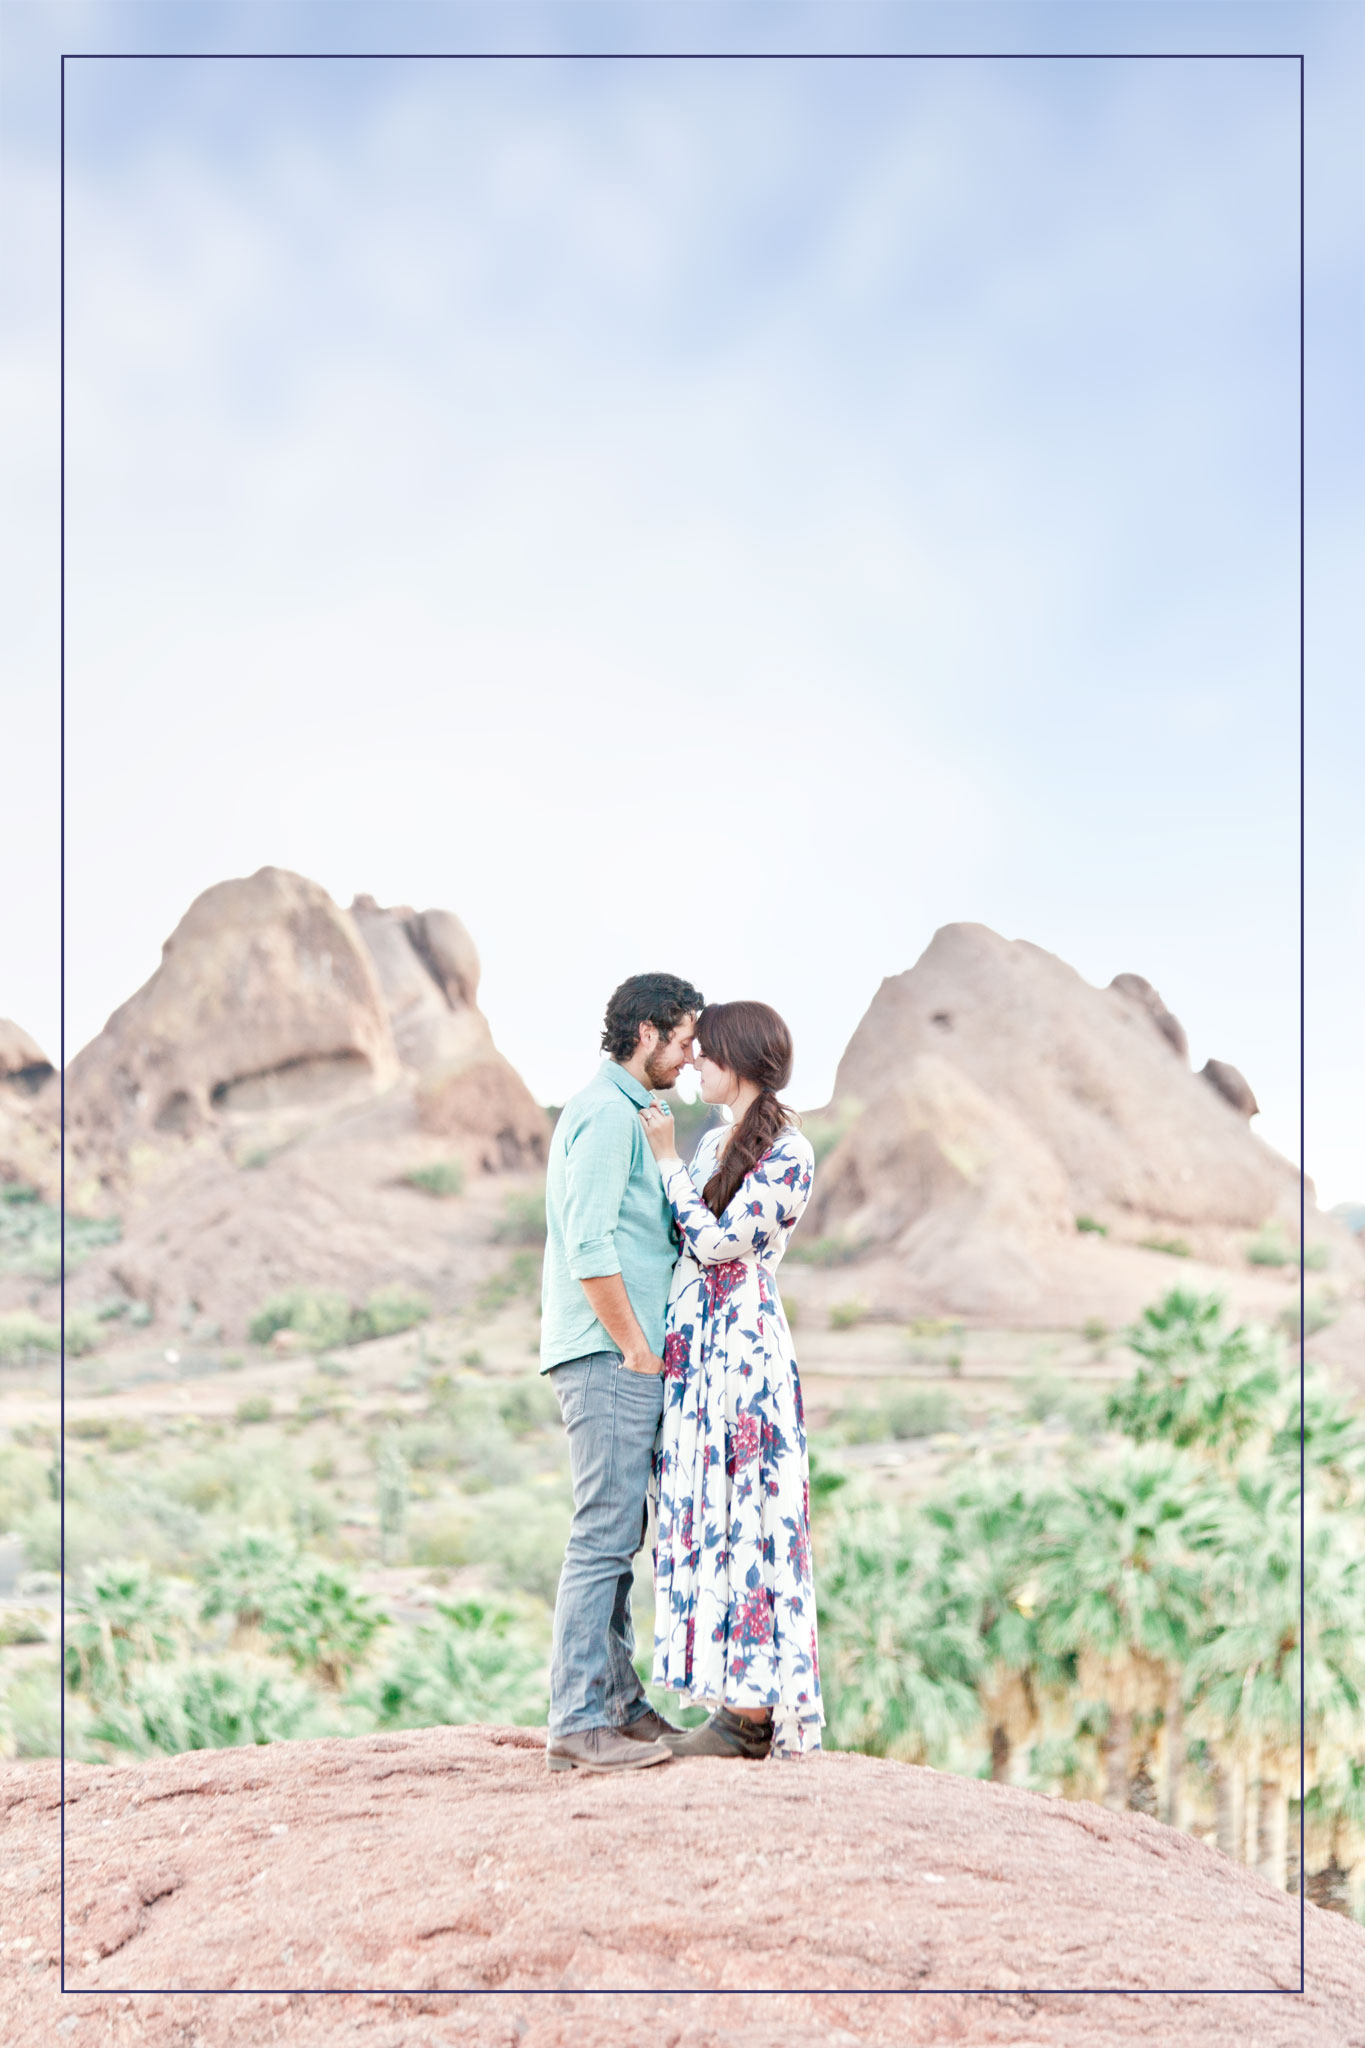 Teresa-Valencia-Photography-Papago-Park-Engagement.jpg